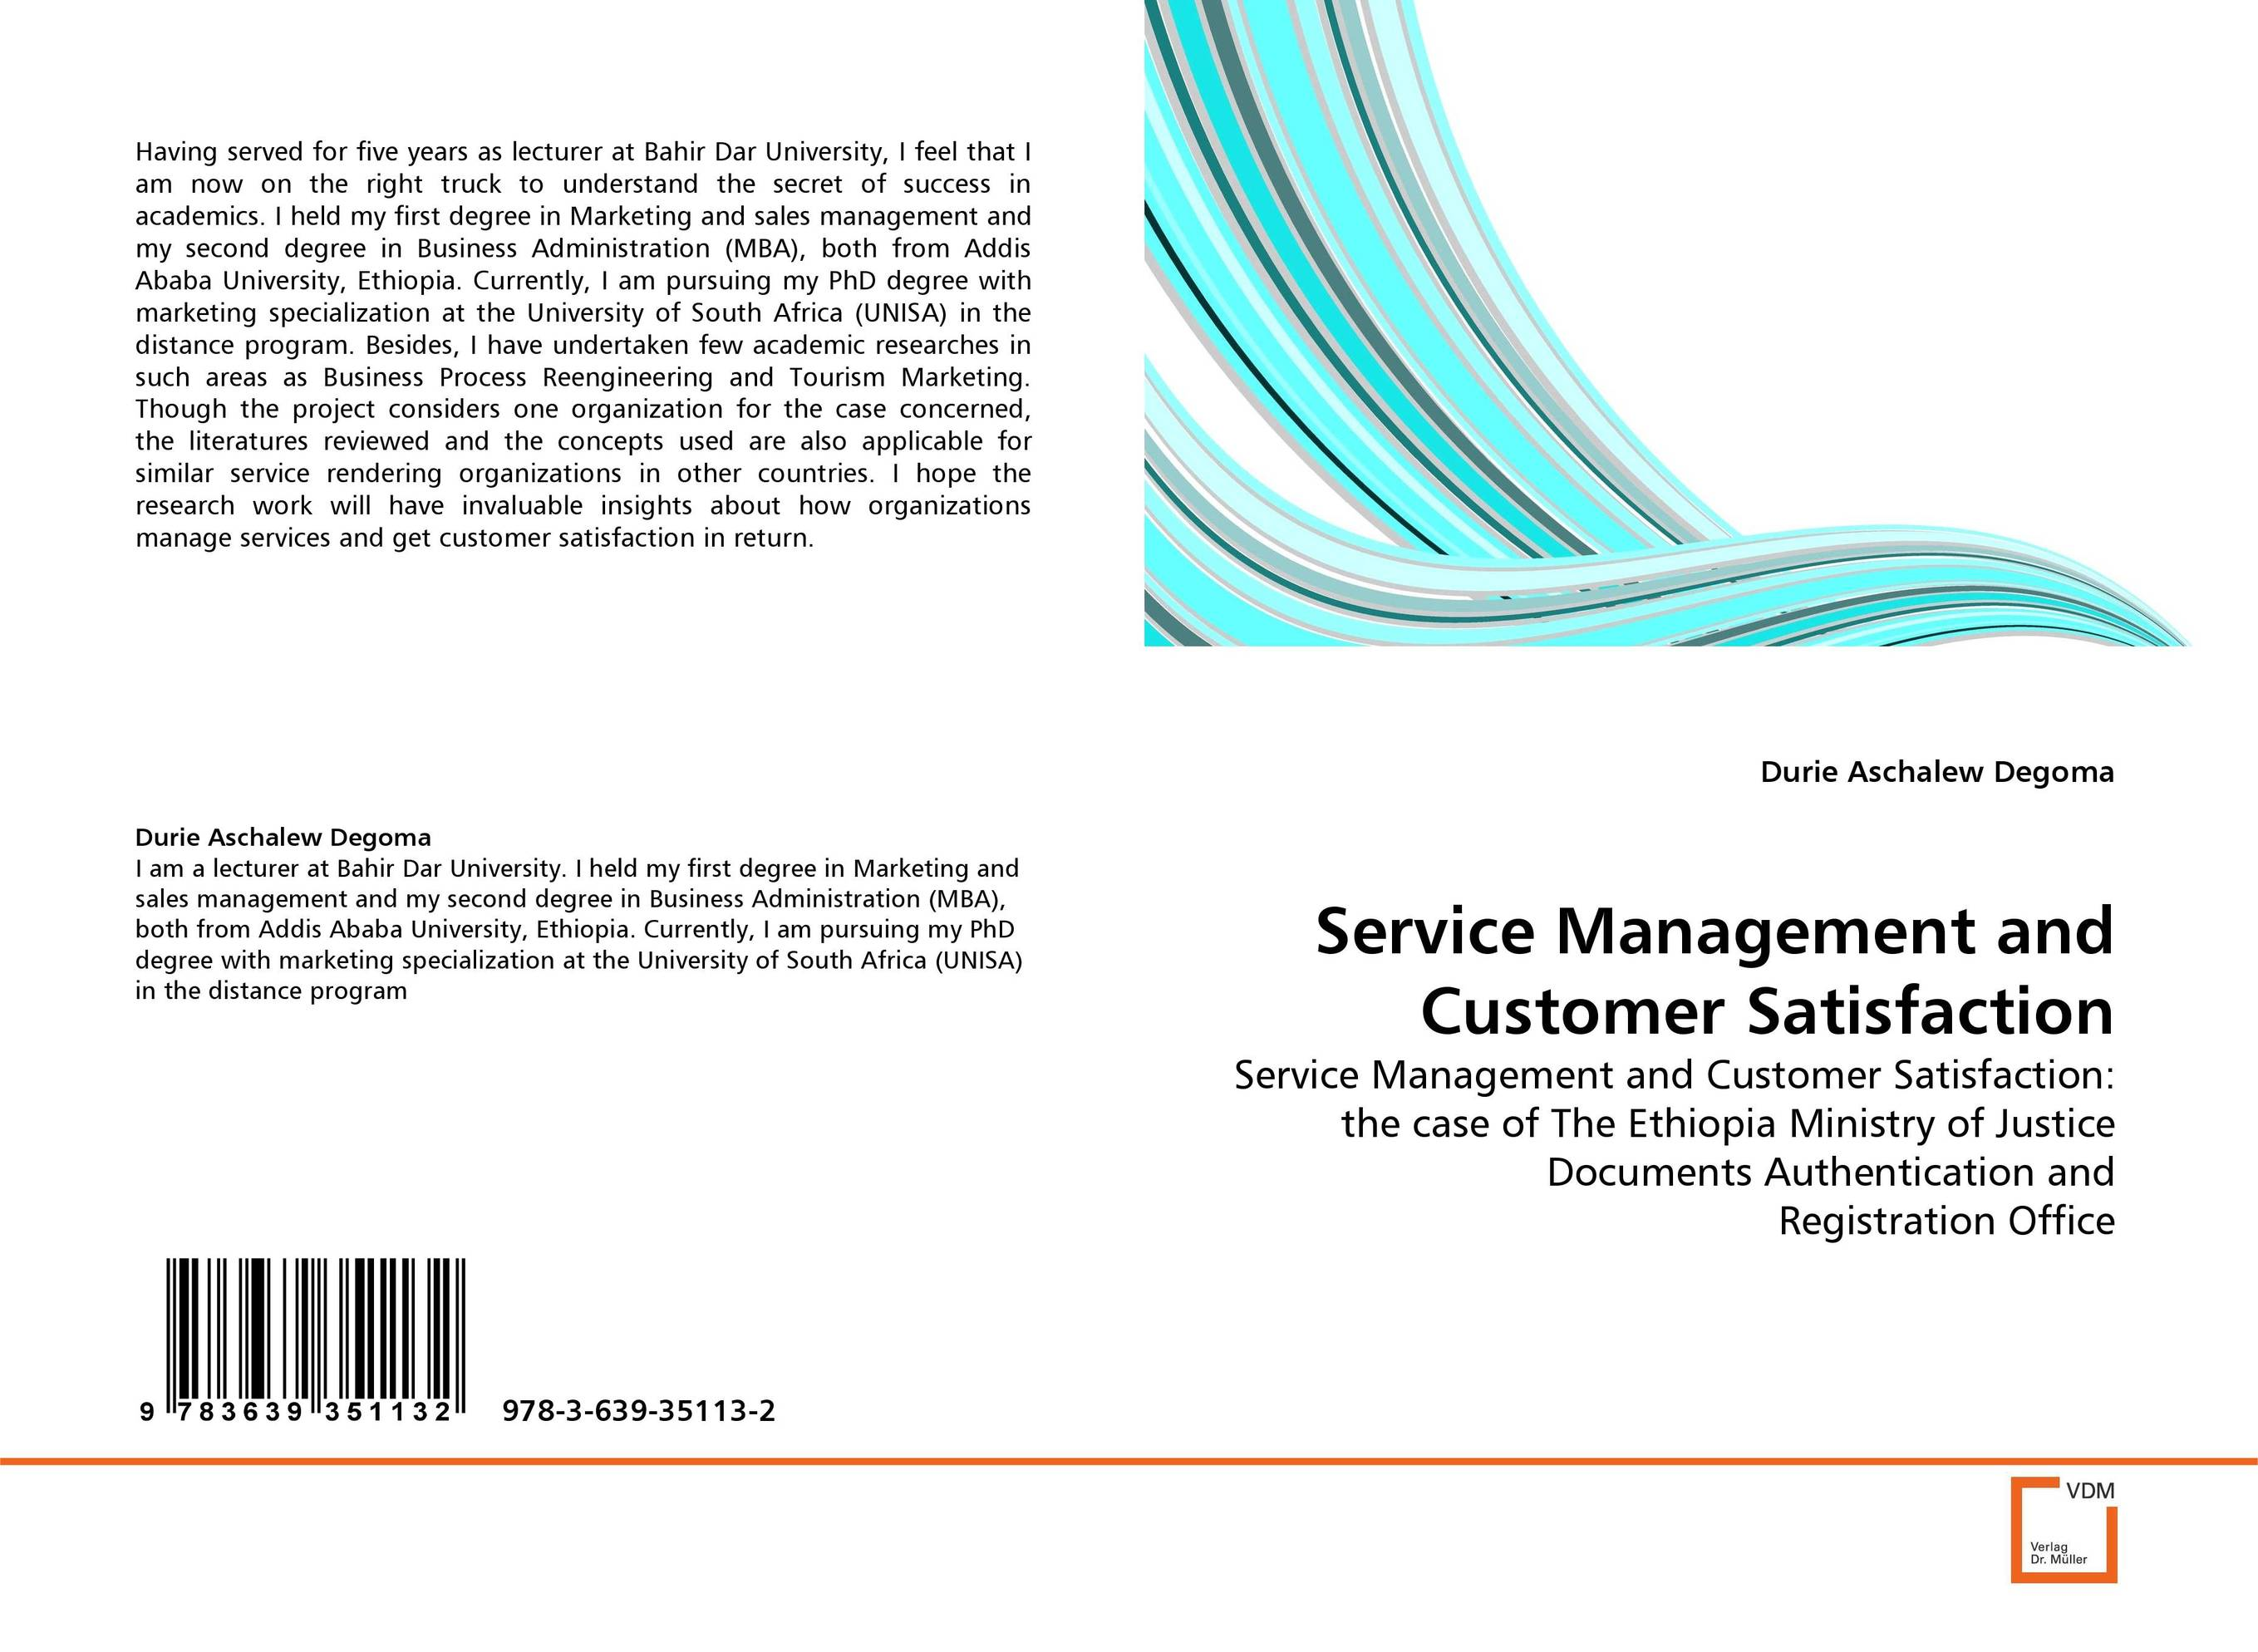 Service Management and Customer Satisfaction